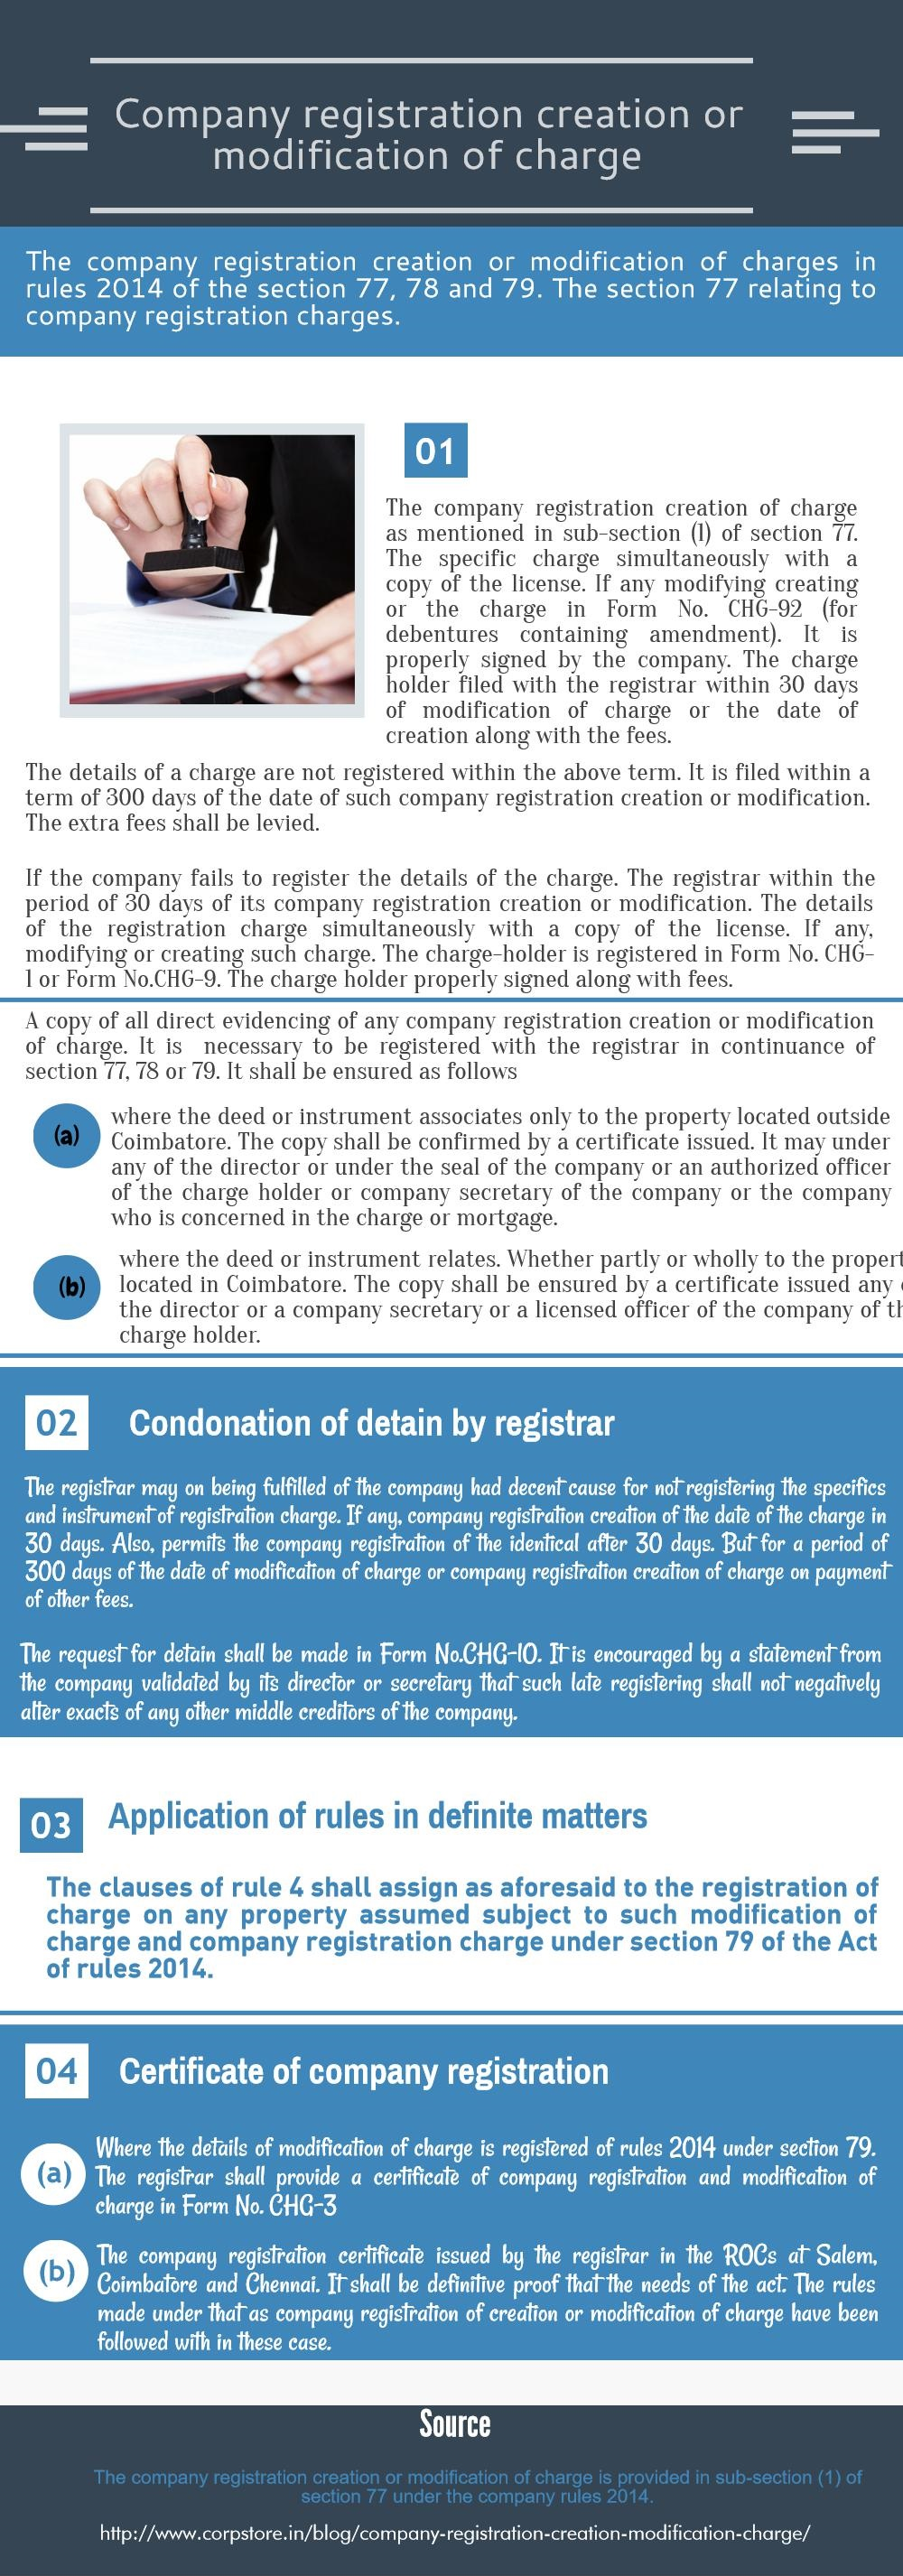 Company registration creation or modification of charge